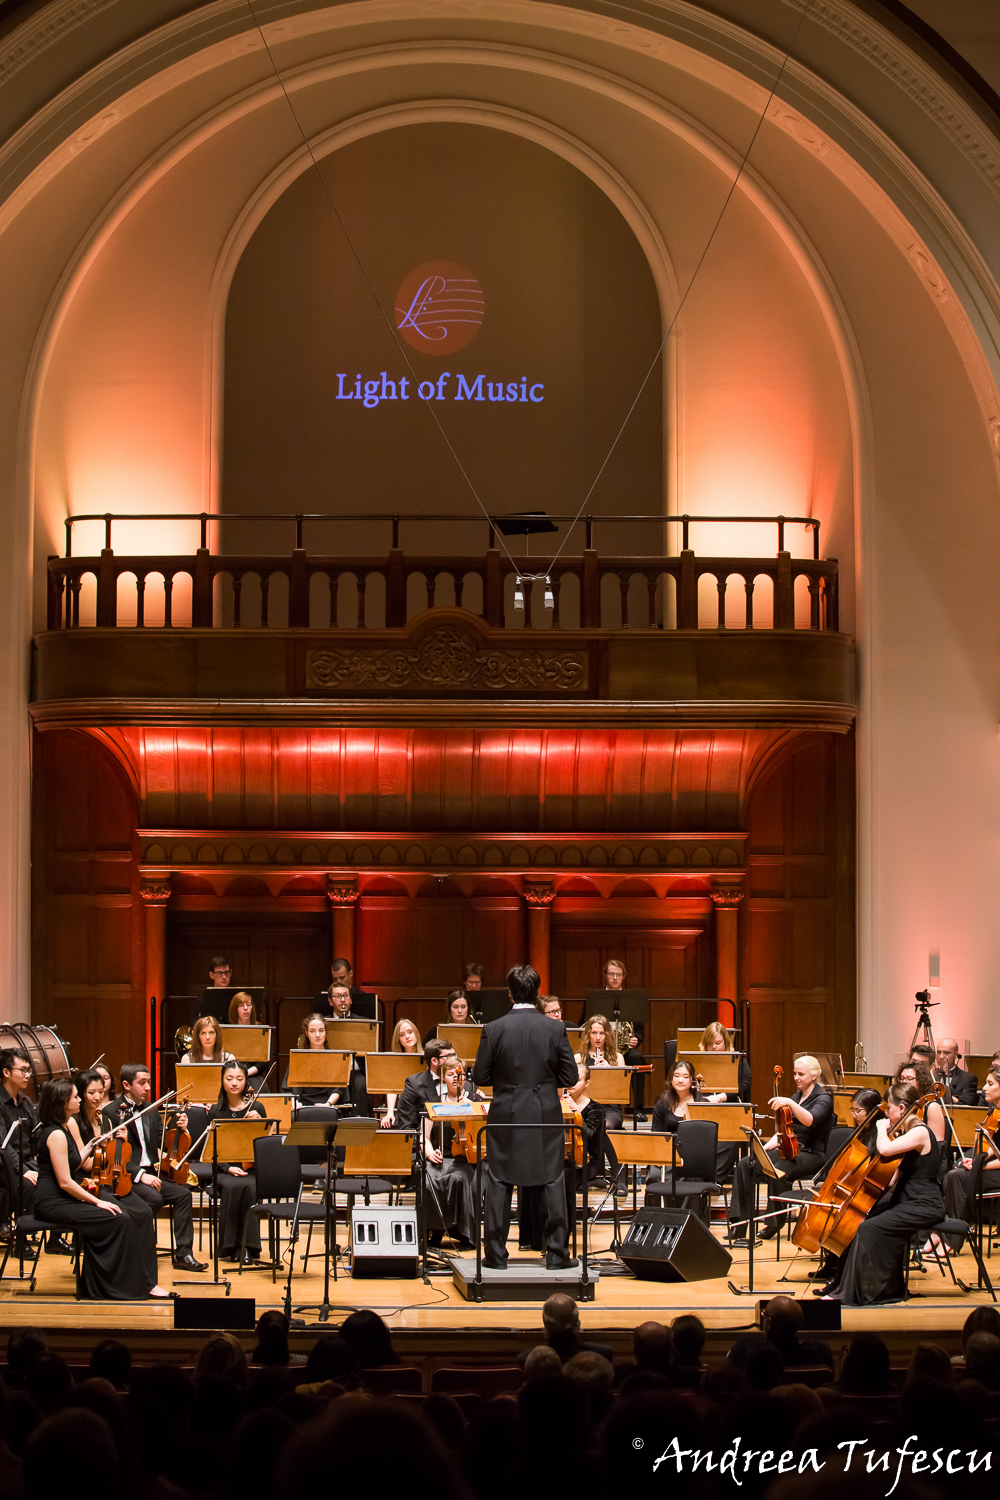 Light of Music classical concert at Cadogan Hall by London photographer Andreea Tufescu